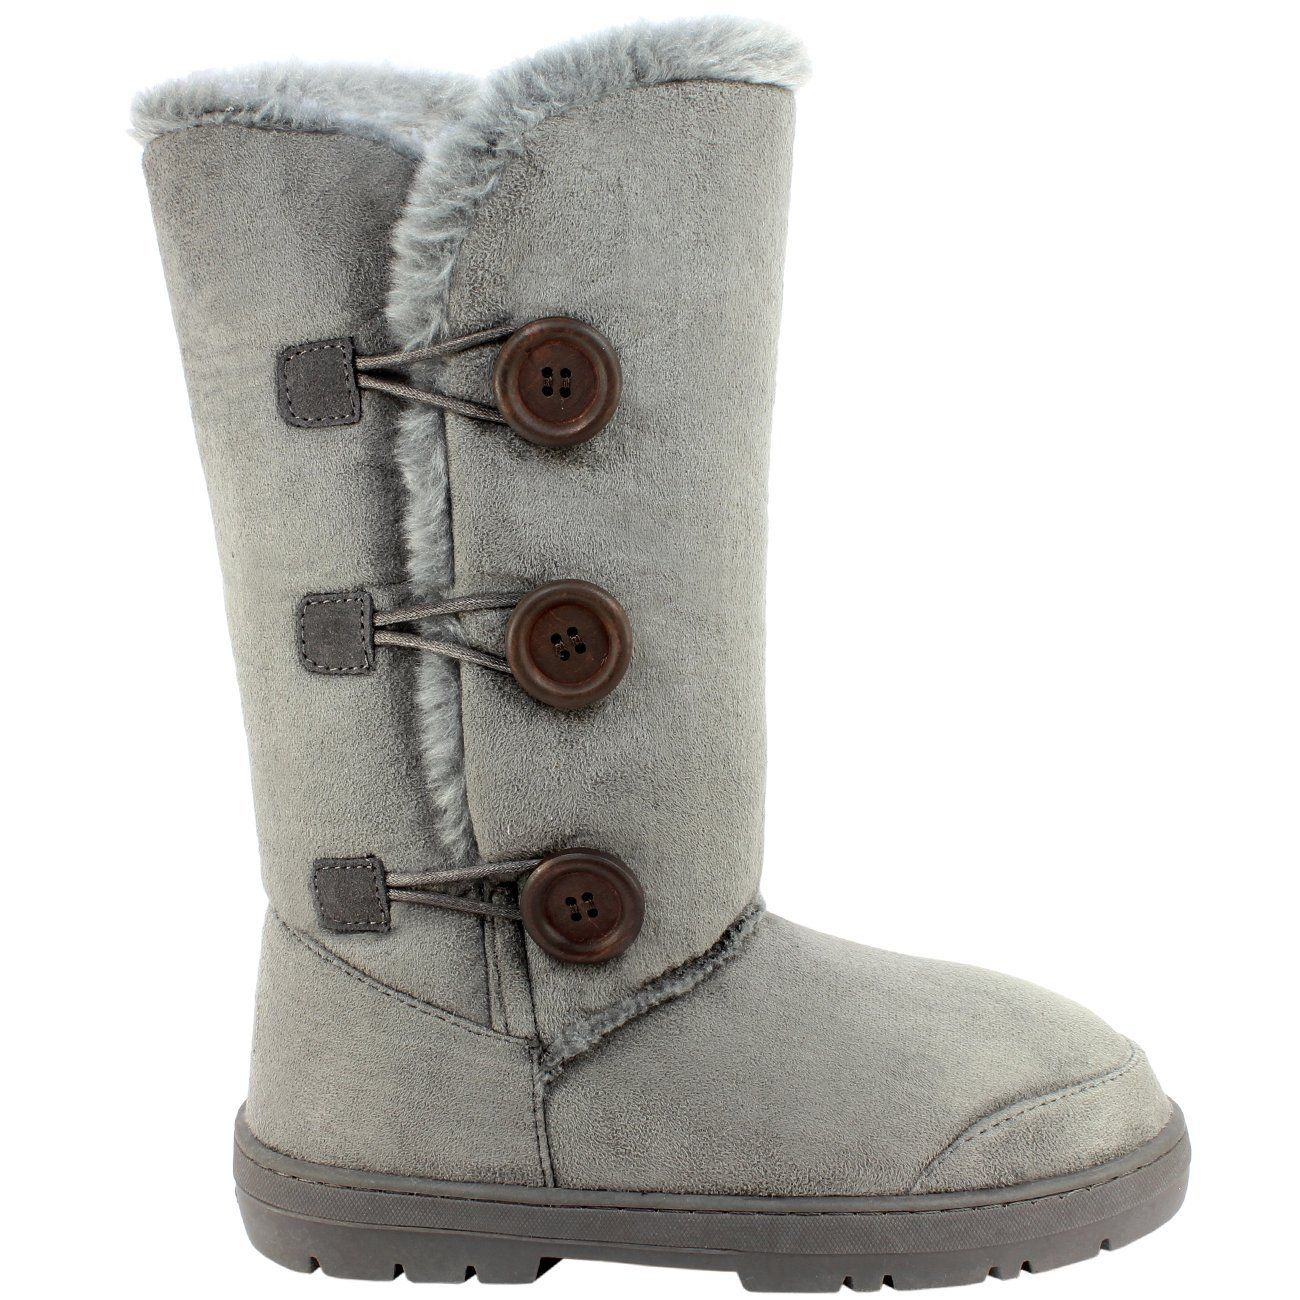 79cc0d1531f Womens-Lined-Button-Thick-Boots Womens Tall Fur Lined Button Thick ...